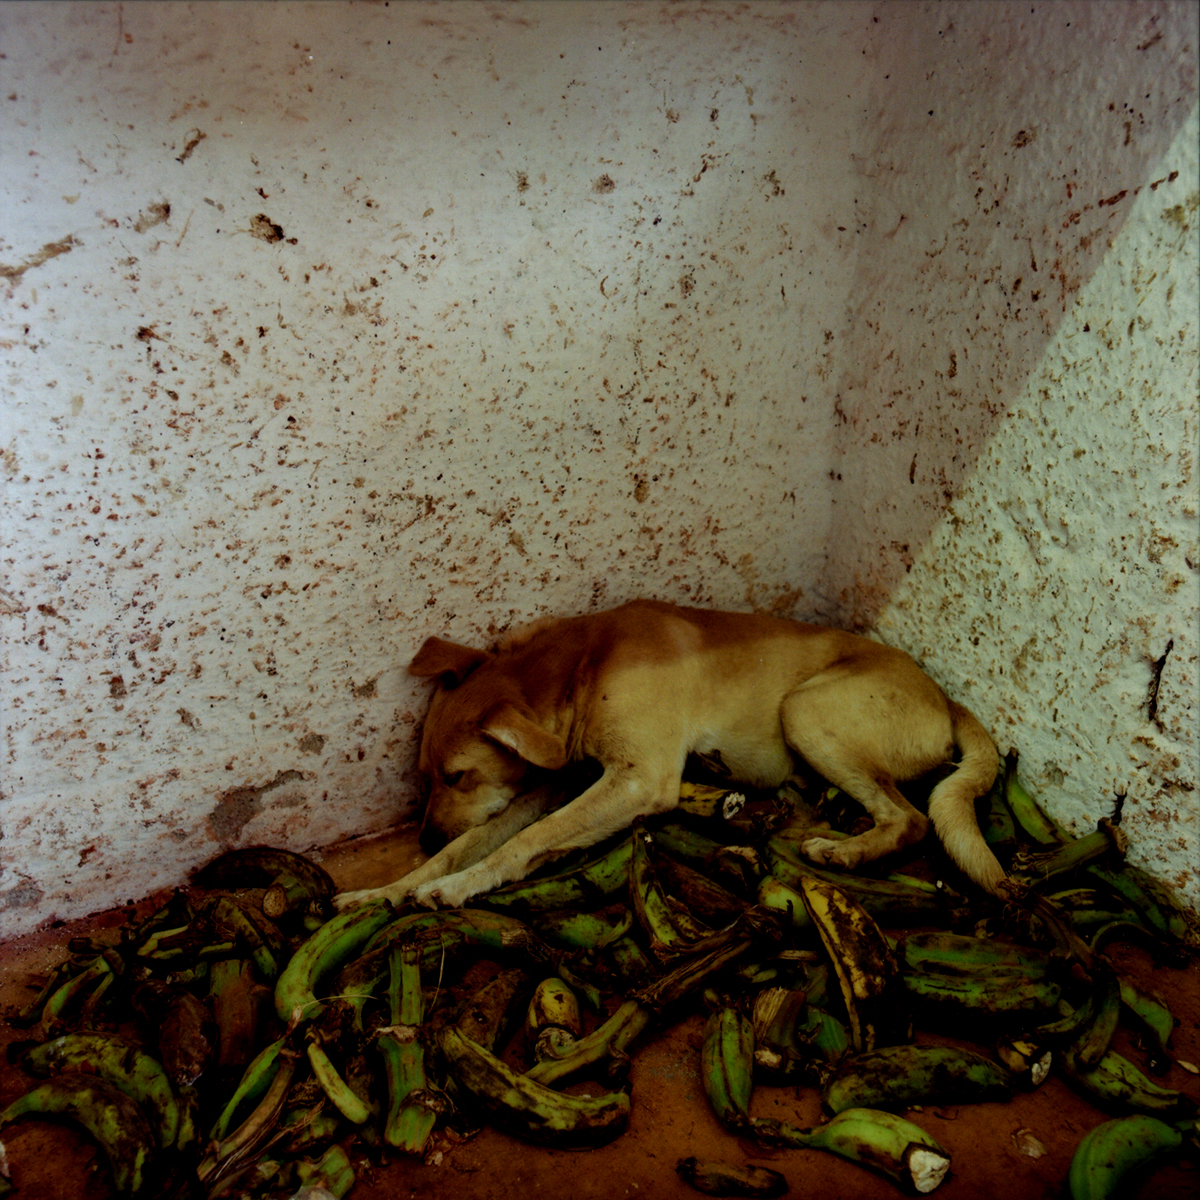 A stray dog sleeps on a bed of discarded plantains.Havana, Cuba